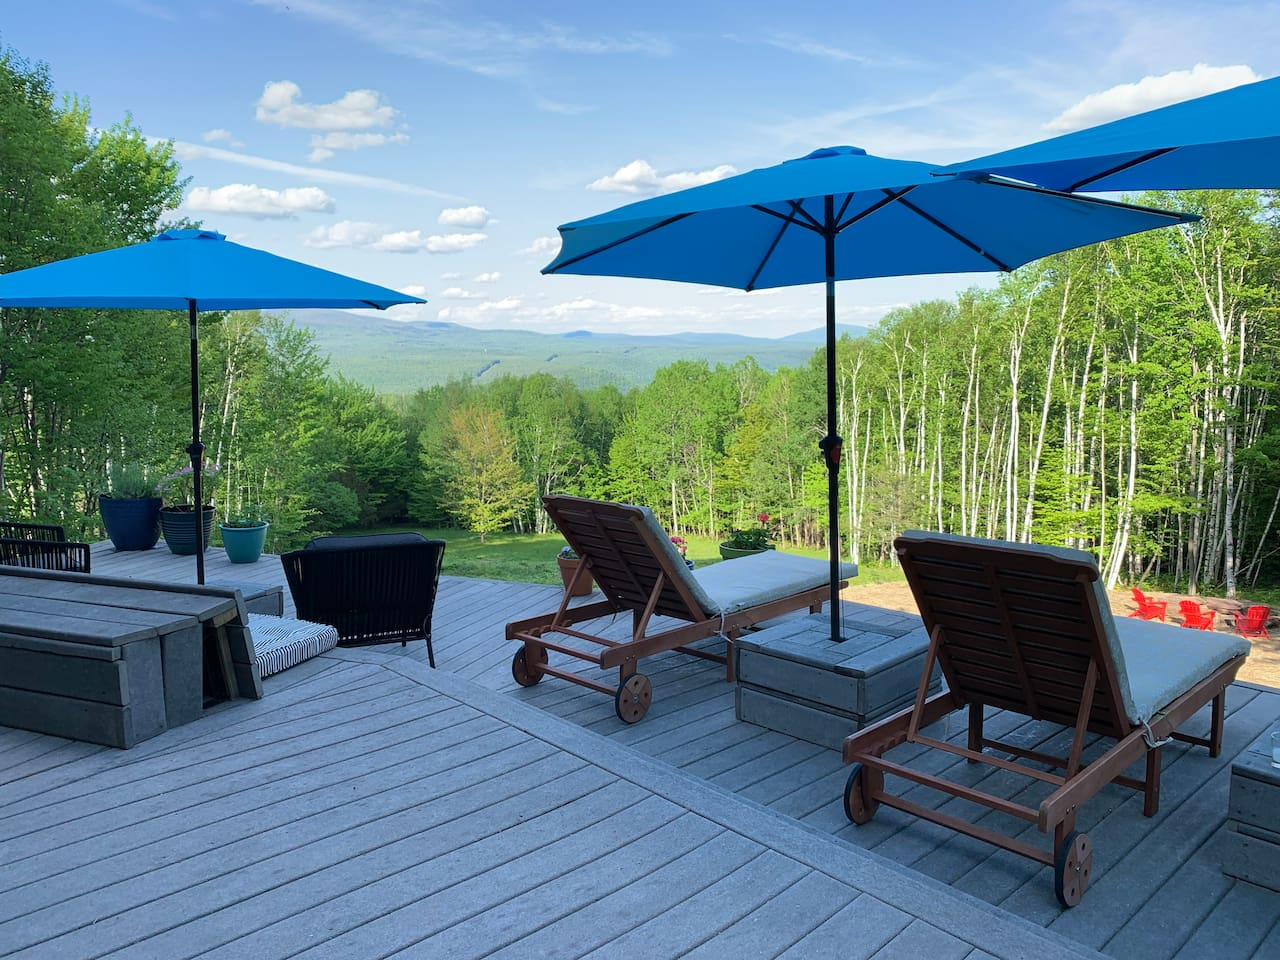 New patio setup for summer 2019 includes ample seating (including a 13 ft long bench), chaise lounges, dining area, and propane grill facing the magnificent view